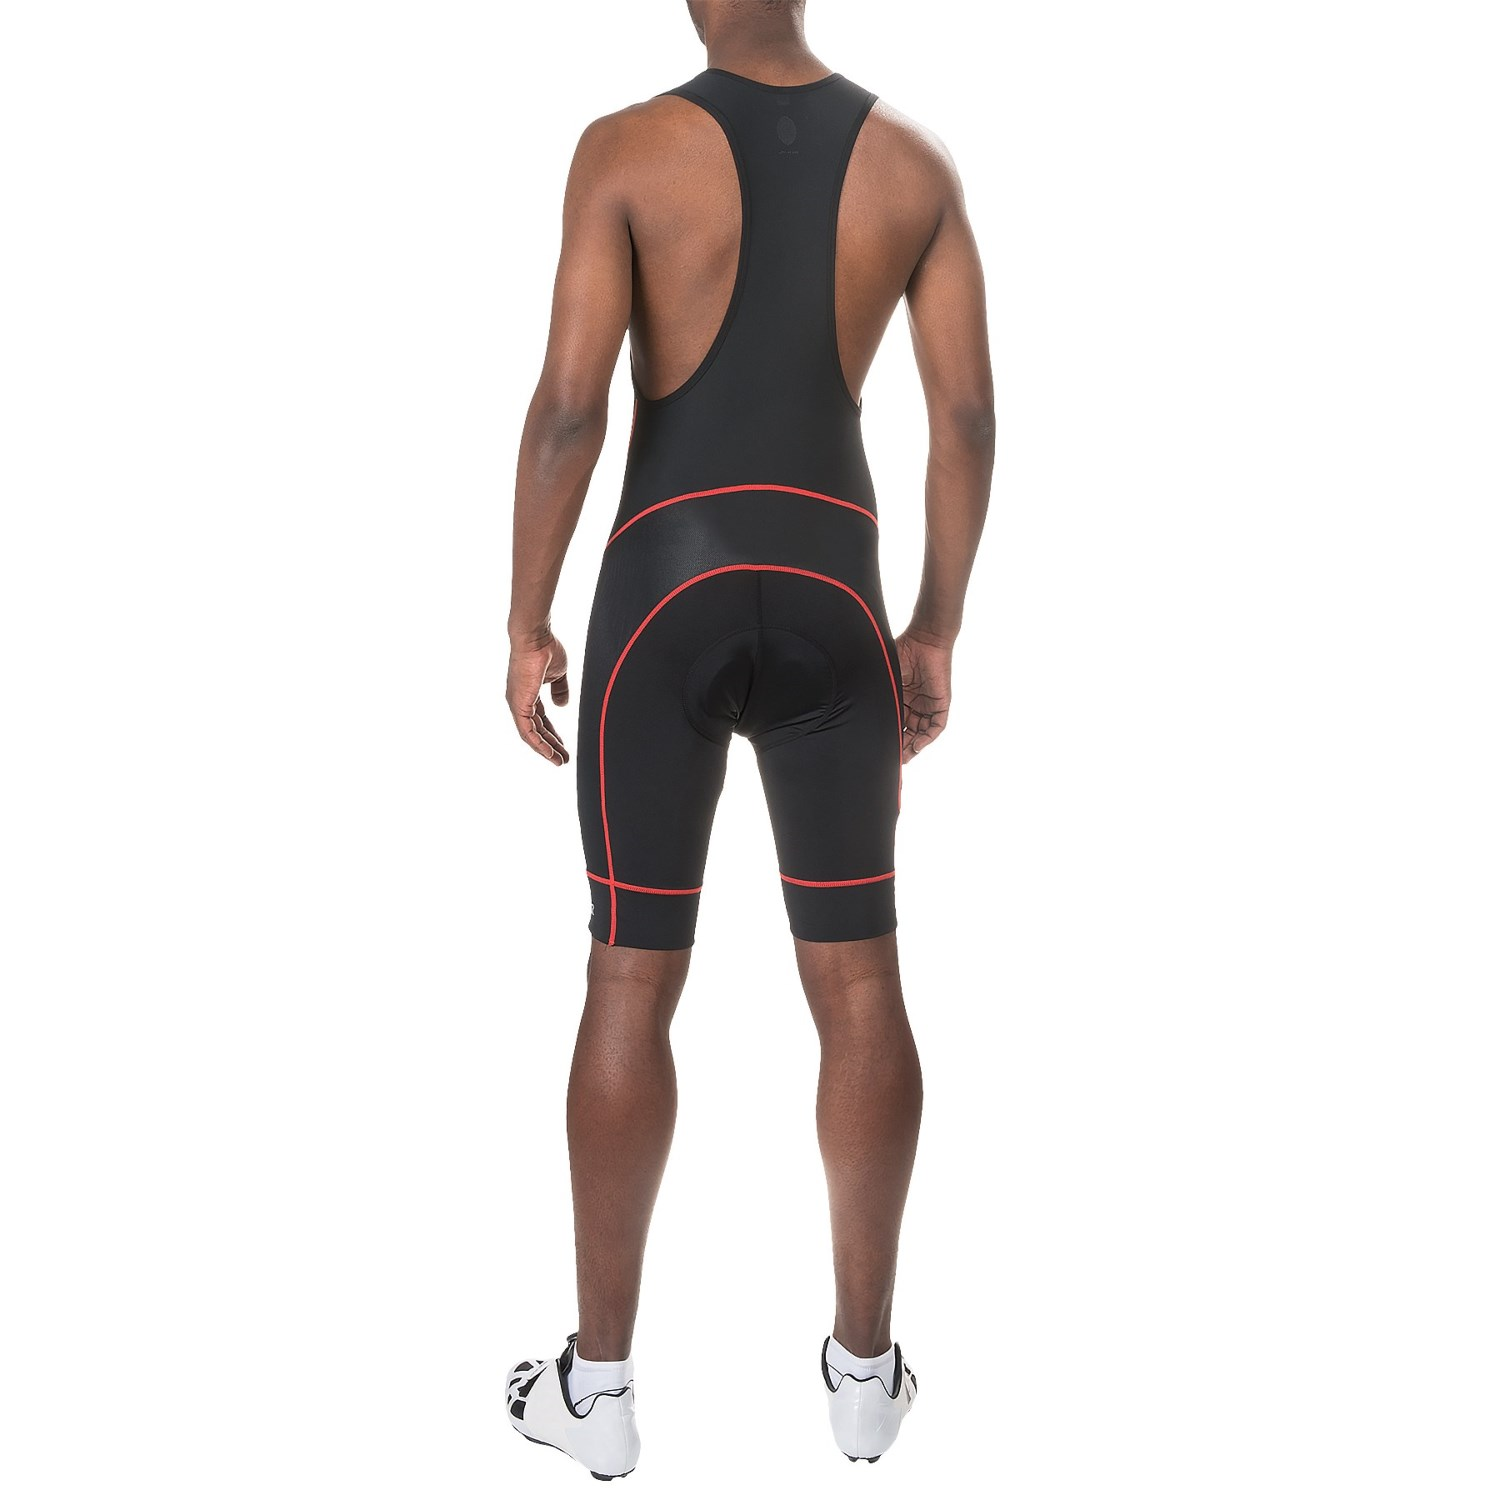 Club Ride Airliner Mesh Cycling Bibs For Men Save 37